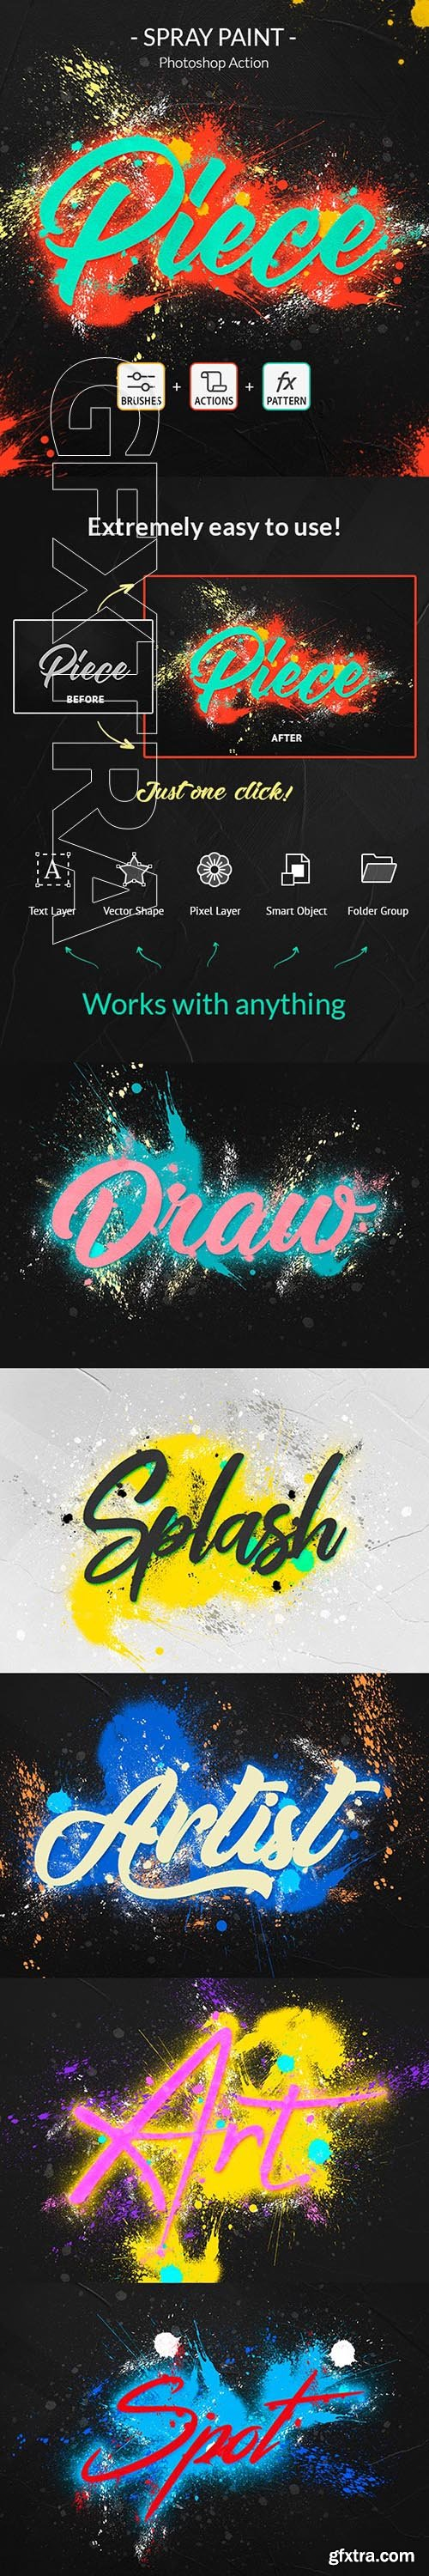 GraphicRiver - Spray Paint Photoshop Action 24380797